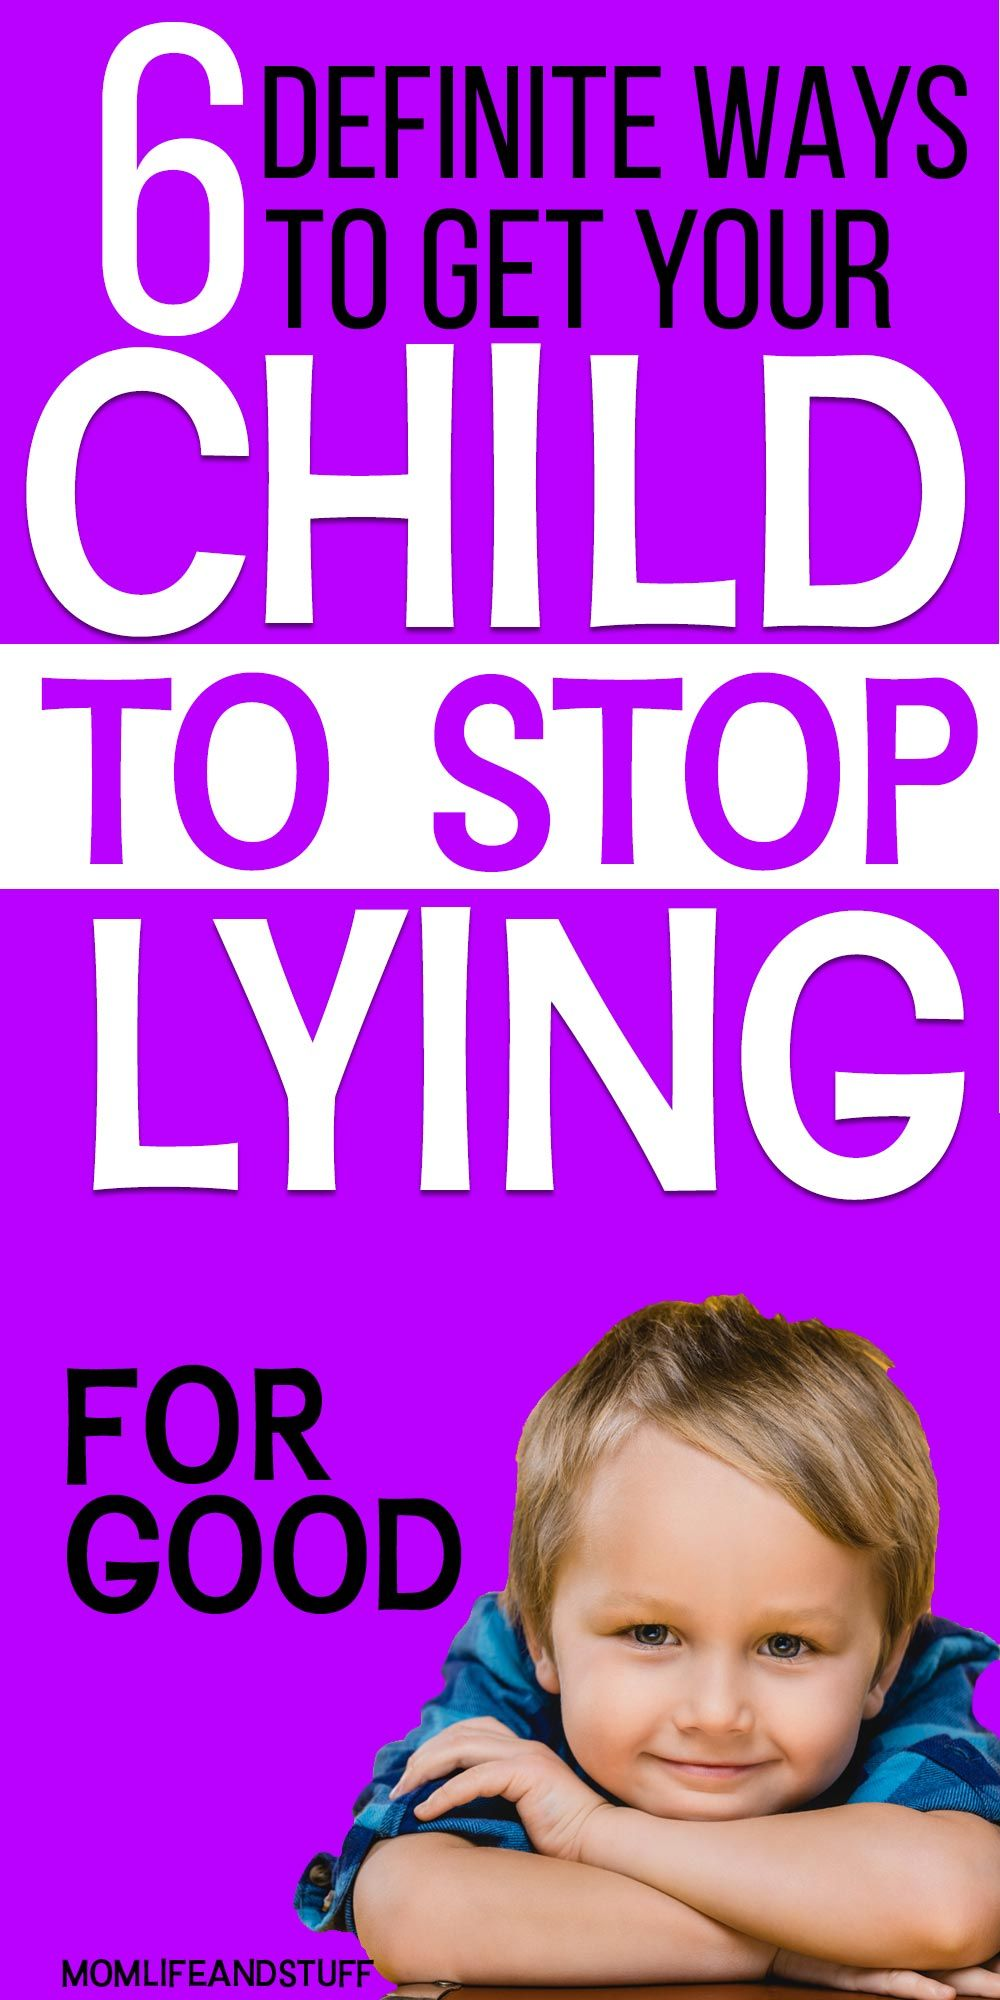 08437b8e11095a8e0e504a55d171dbed - How Do You Get Your Child To Stop Lying